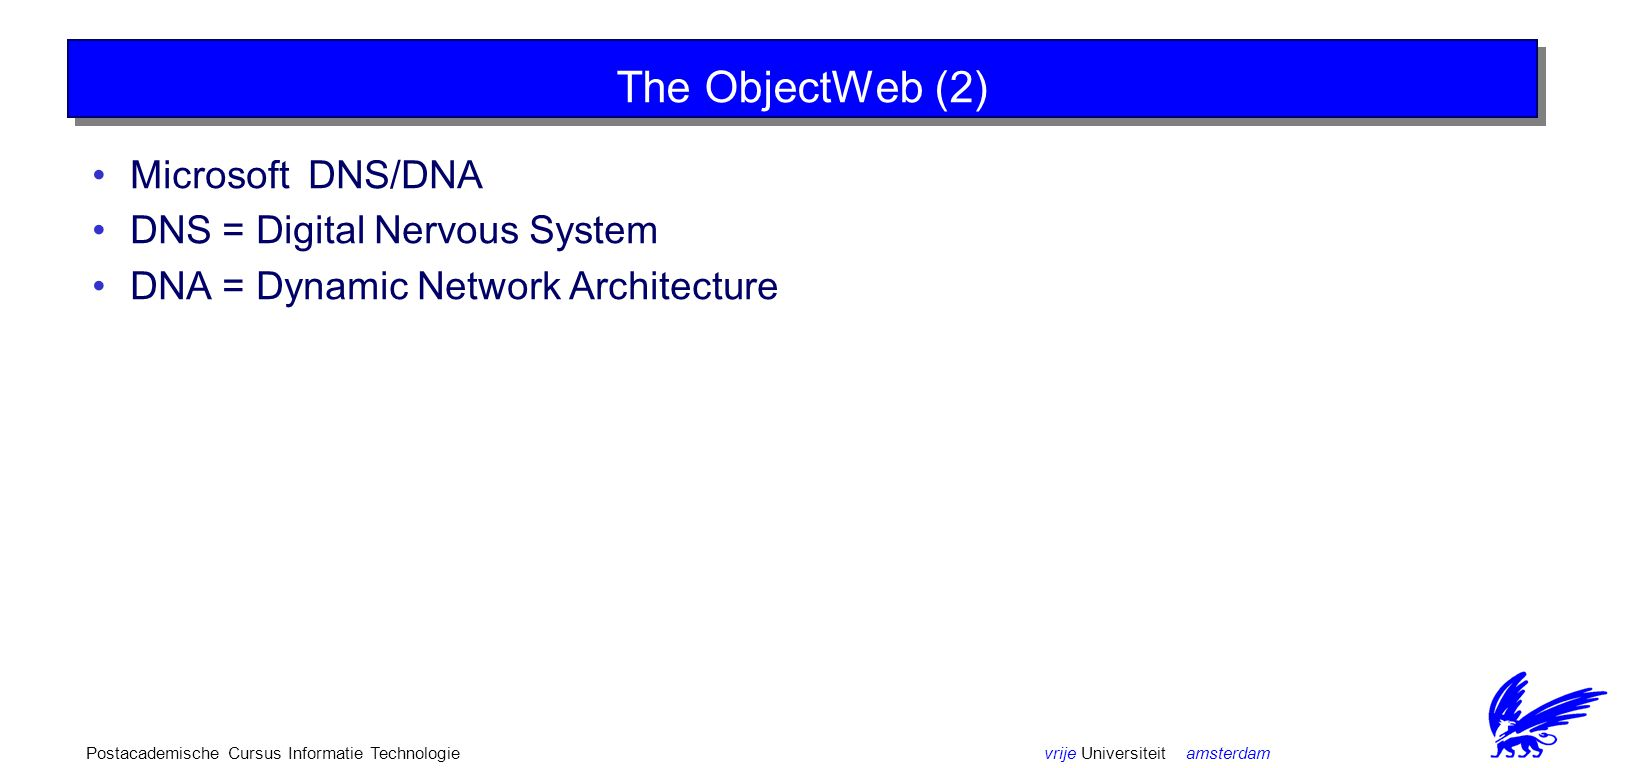 vrije Universiteit amsterdamPostacademische Cursus Informatie Technologie The ObjectWeb (2) Microsoft DNS/DNA DNS = Digital Nervous System DNA = Dynamic Network Architecture